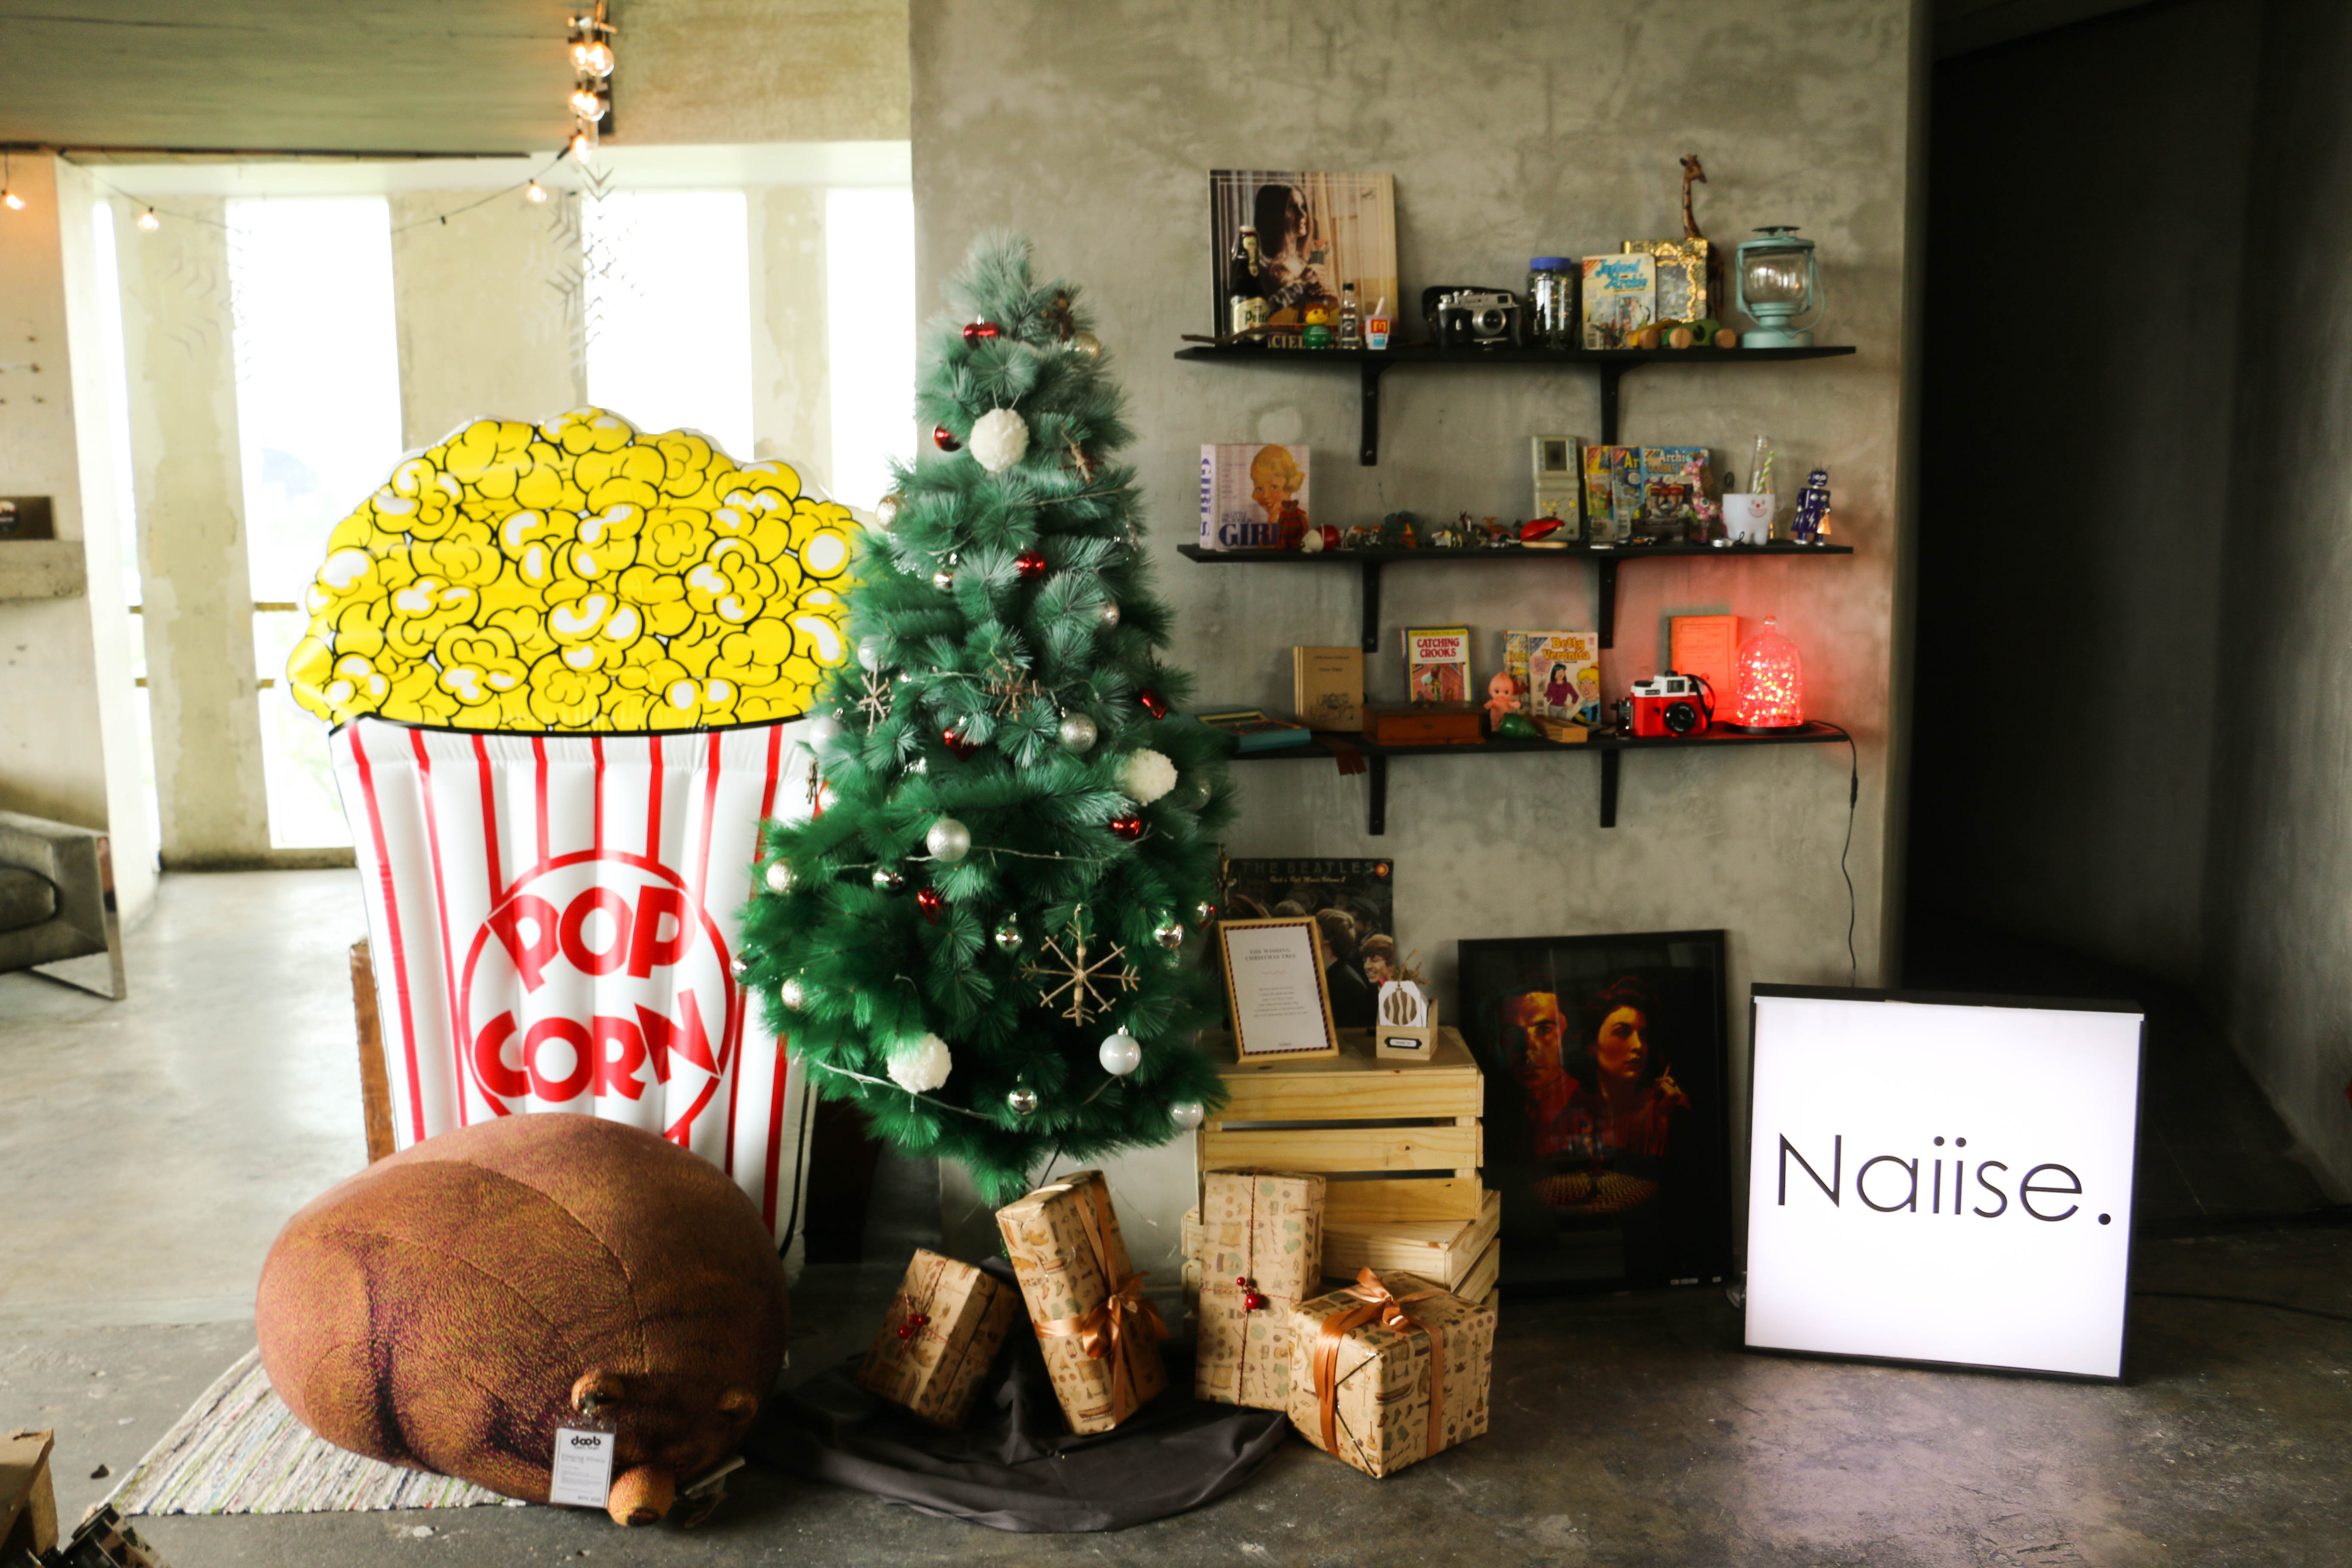 The Best Markets In Singapore For Christmas Shopping - Camp Christmas Tree